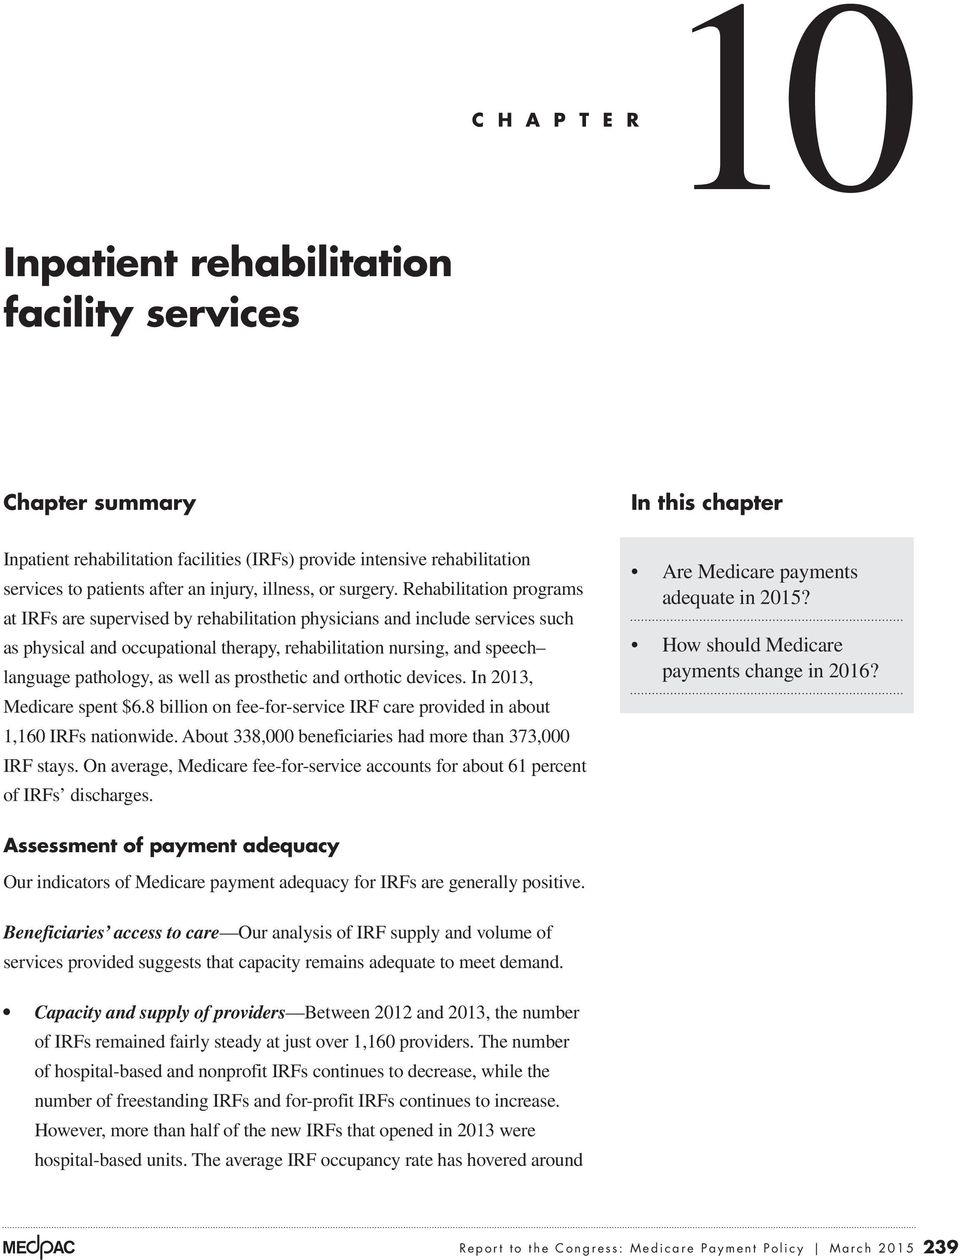 Rehabilitation programs at IRFs are supervised by rehabilitation physicians and include services such as physical and occupational therapy, rehabilitation nursing, and speech language pathology, as